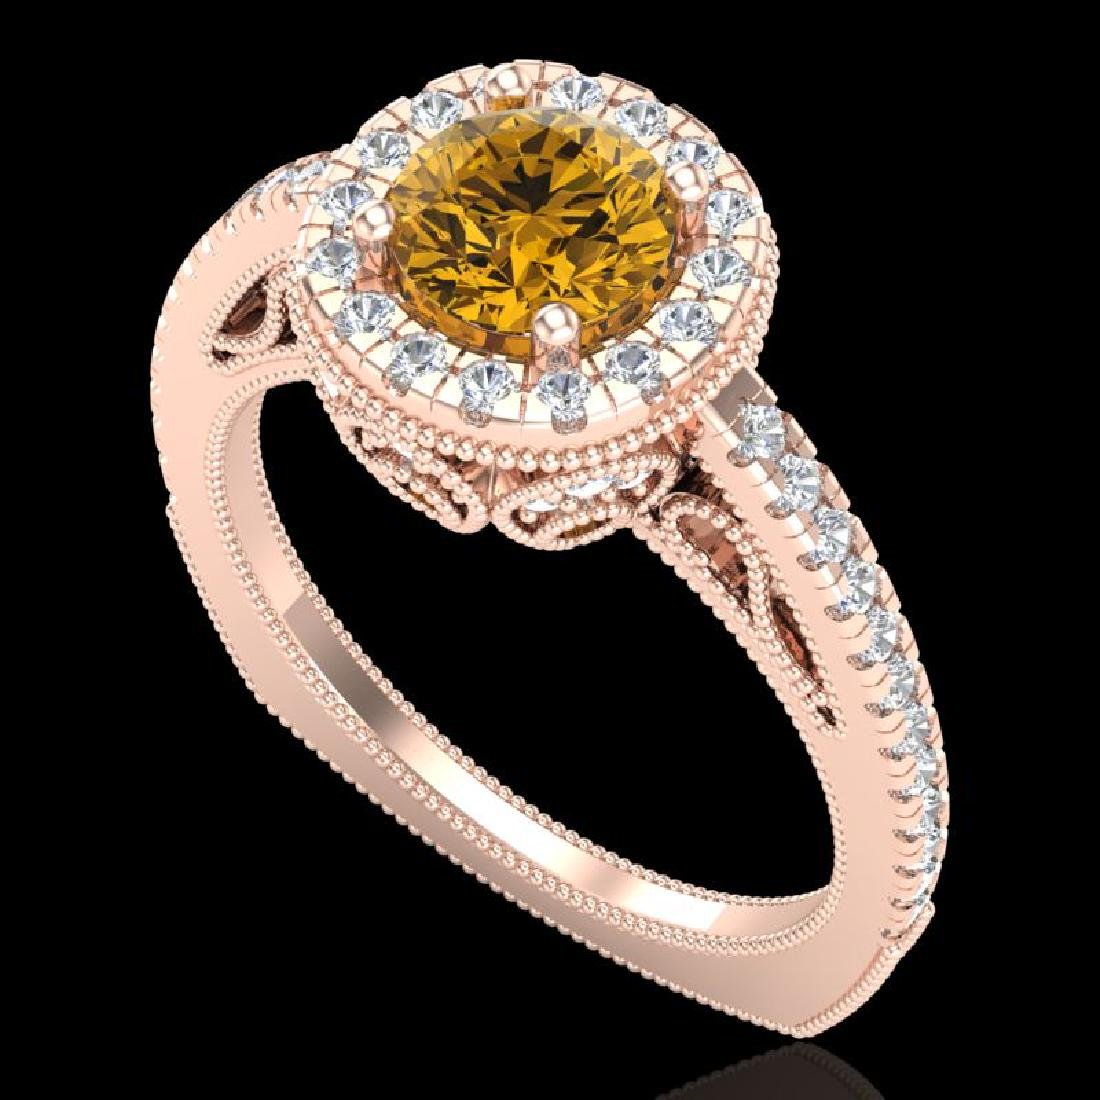 1.55 CTW Intense Fancy Yellow Diamond Engagement Art